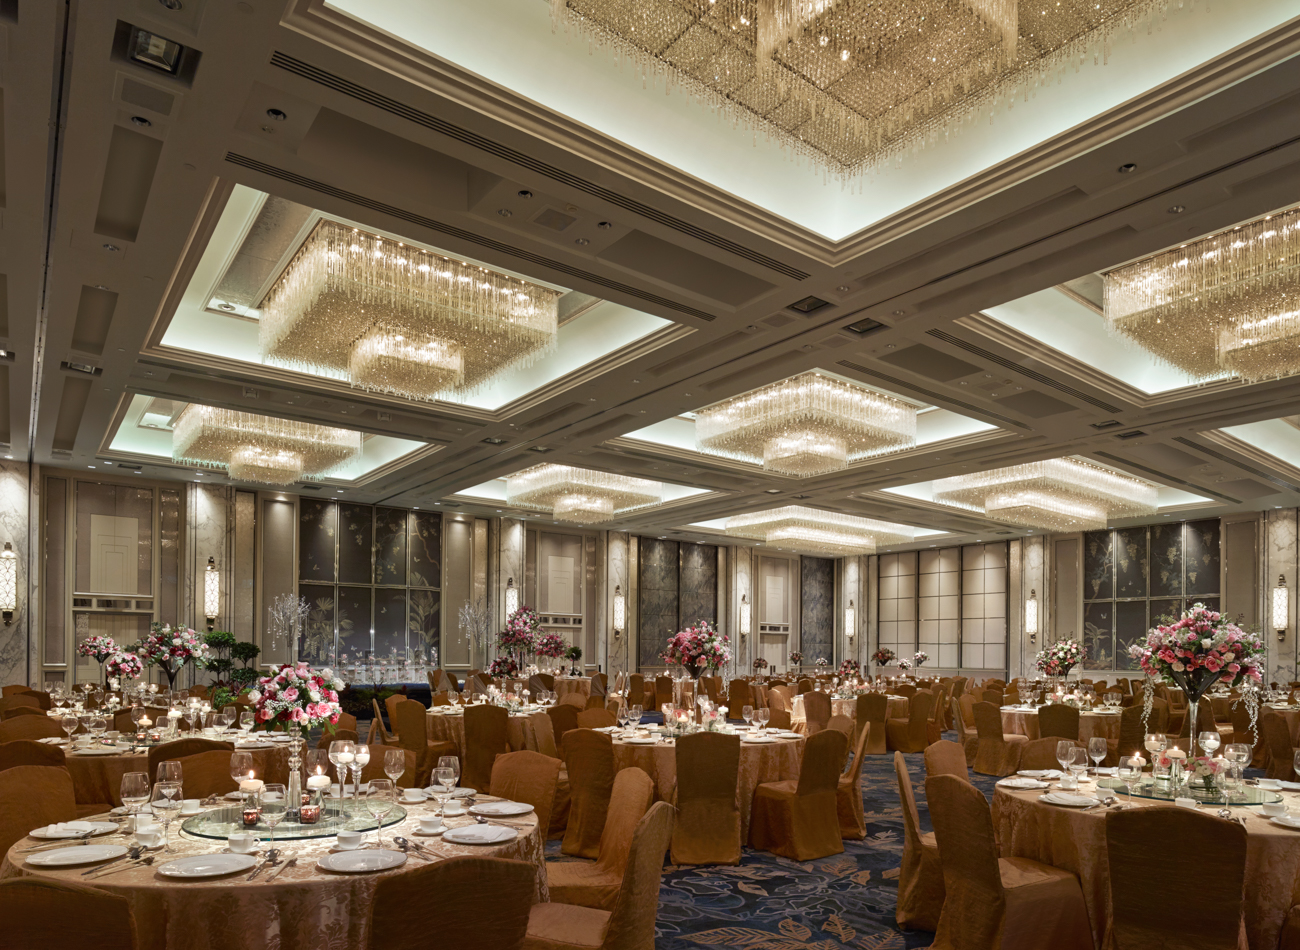 Shangri la hotel singapore for Afghan cuisine banquet hall